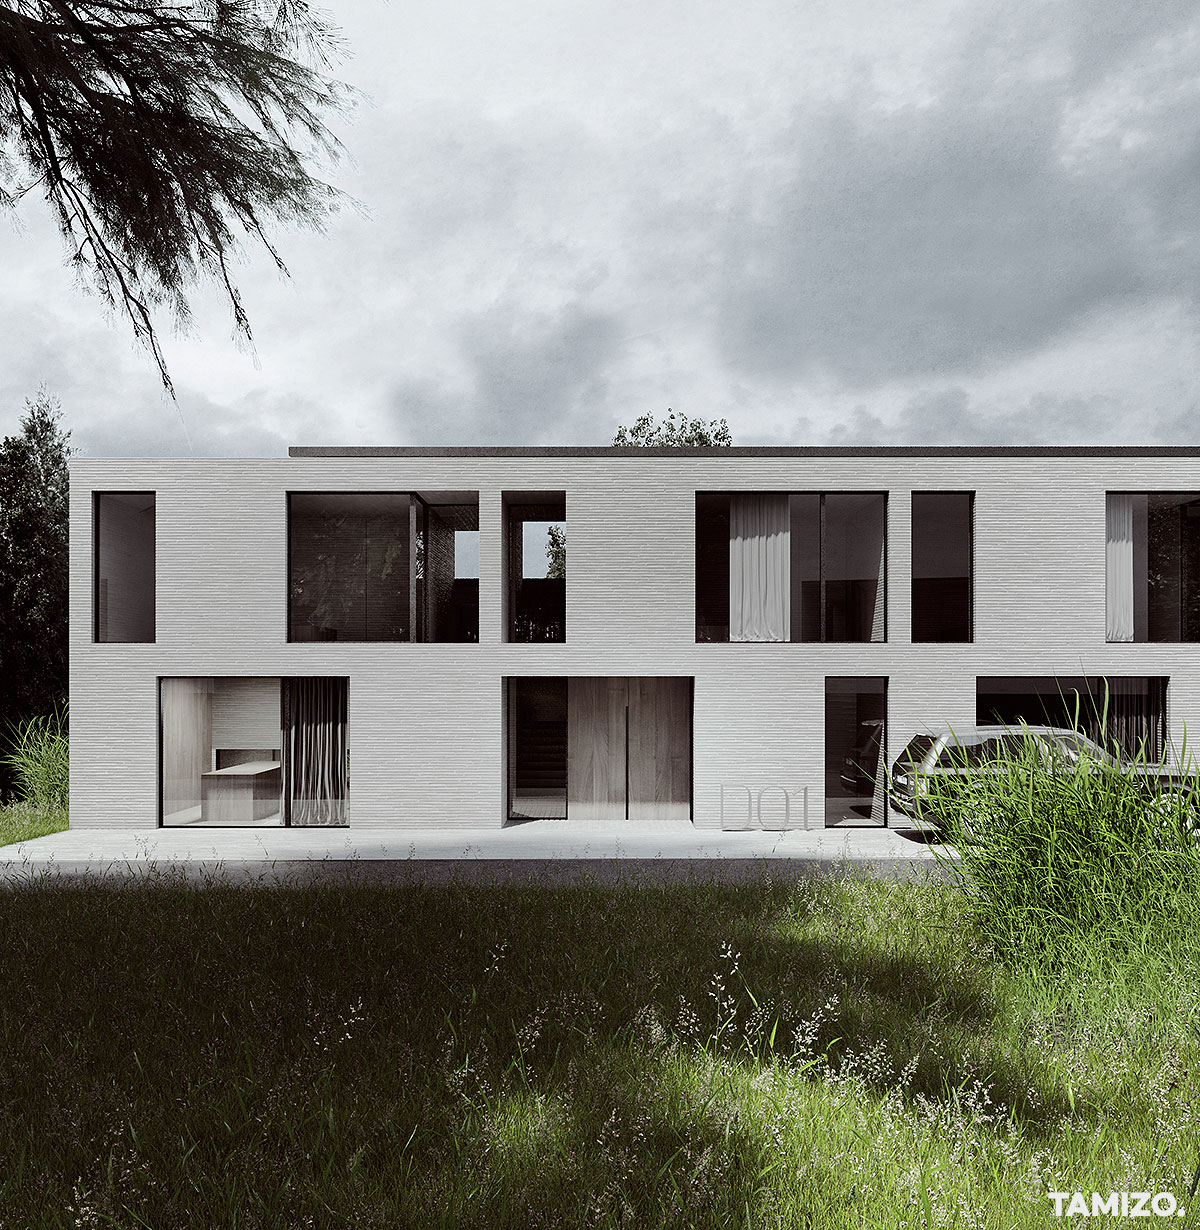 A061_tamizo_architects_competition_tbilisi_georgia_multifamily_houseing_realestate_15